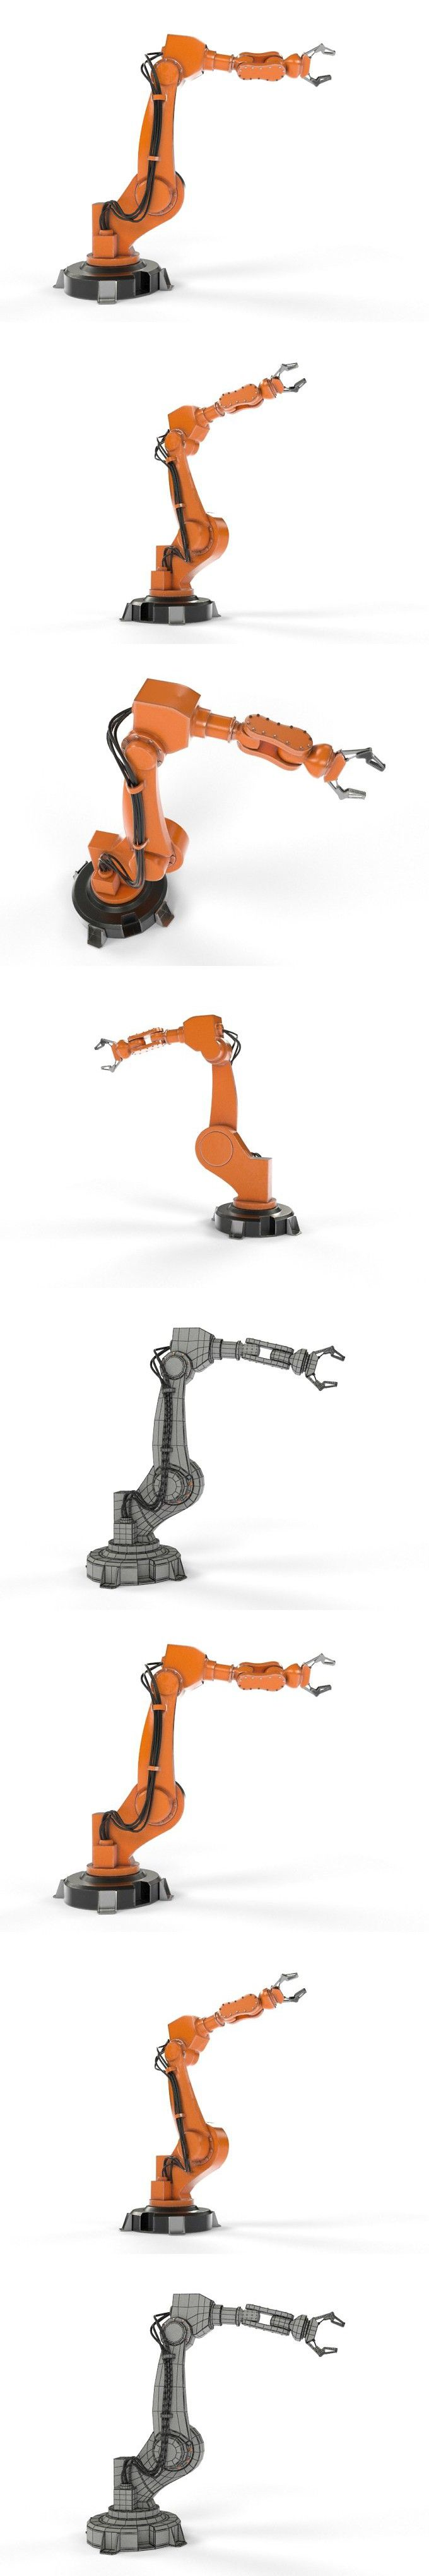 Industrial Robot Arm. 3D Objects